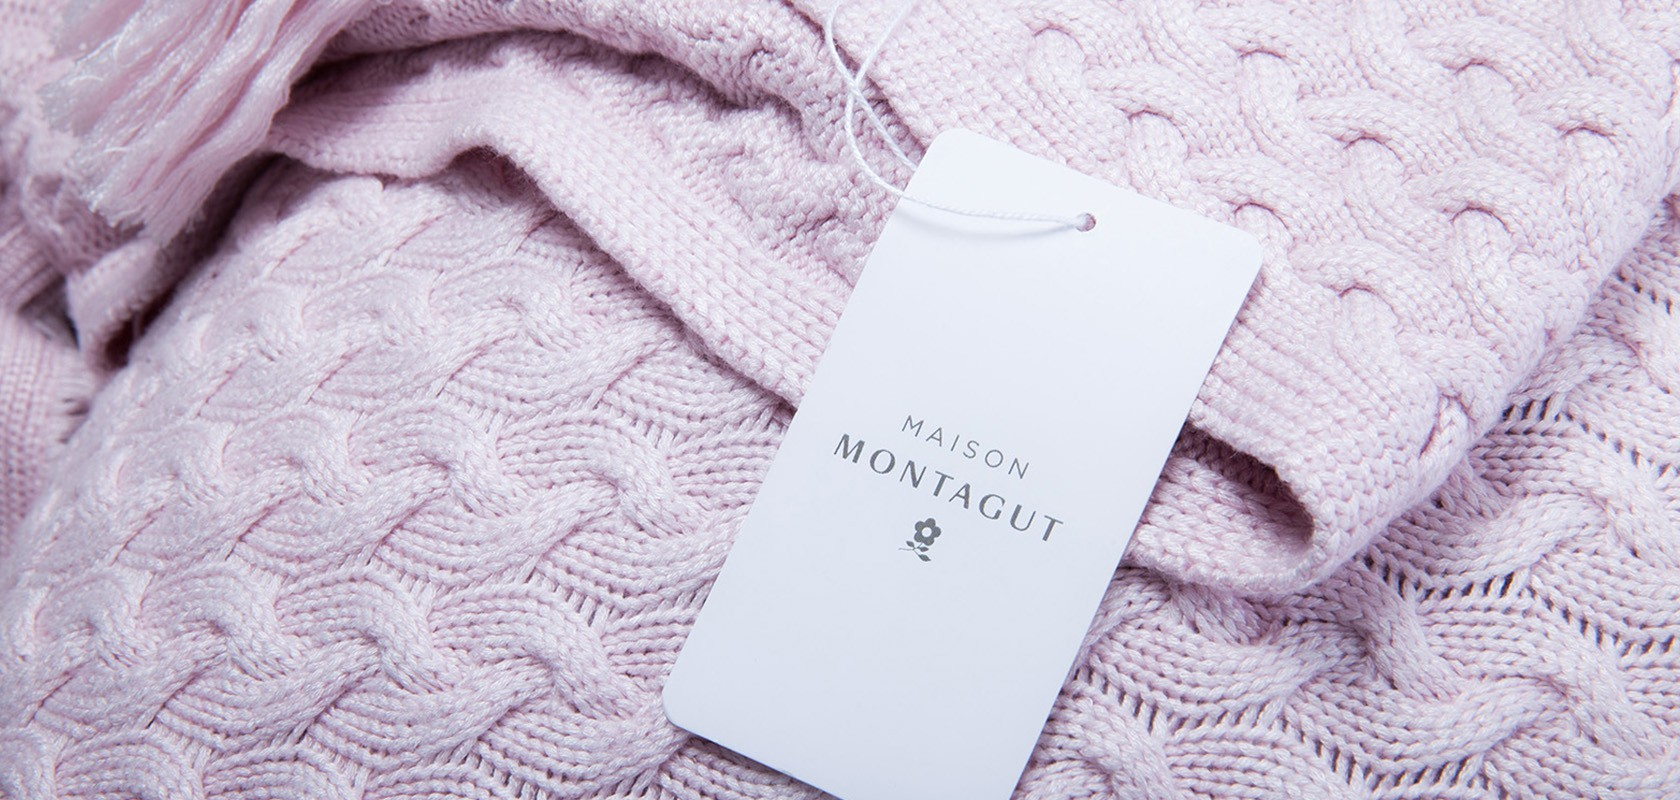 clothing woman outlet Maison Montagut